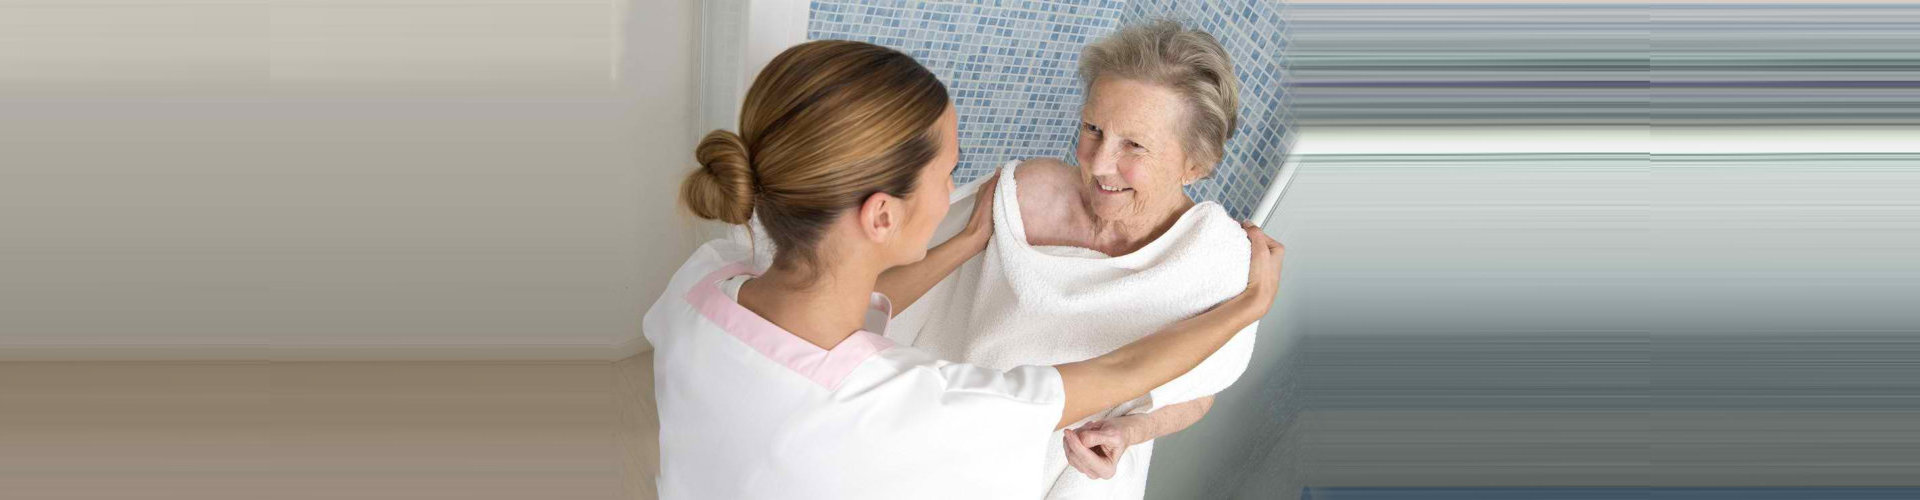 lady caregiver assisting the old woman